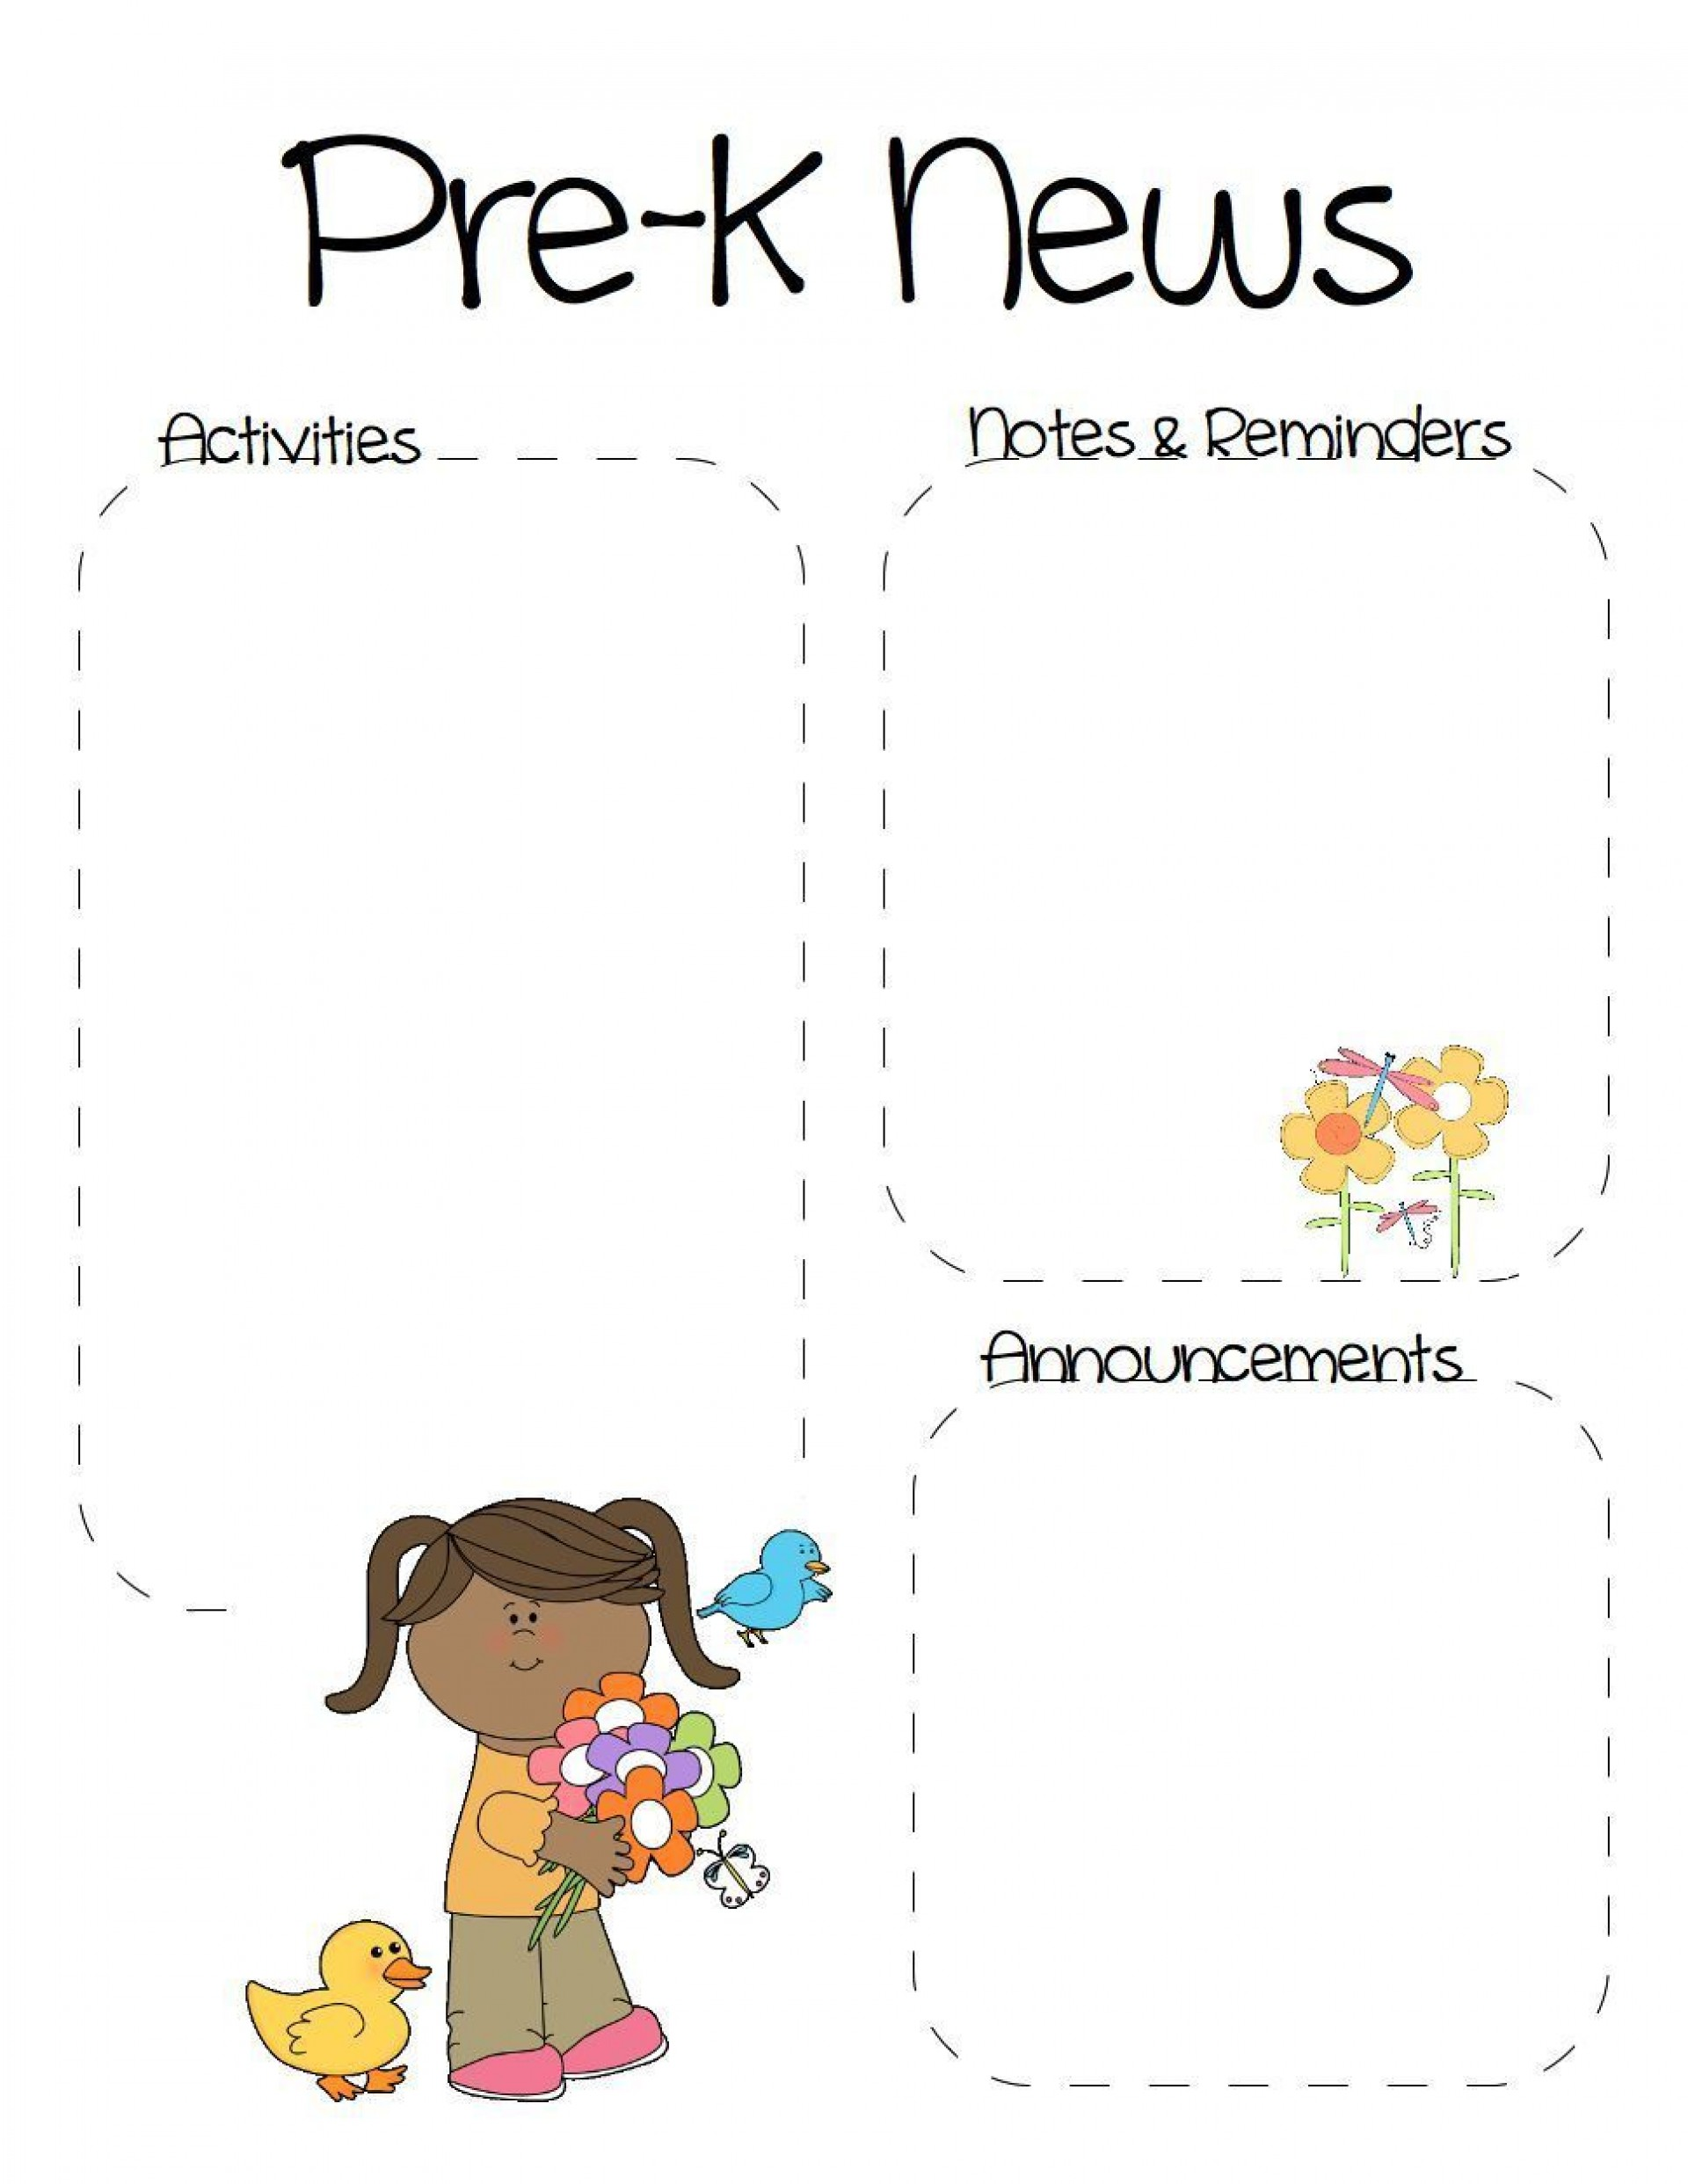 001 Phenomenal Pre K Newsletter Template Picture  Templates Free Printable Classroom1920